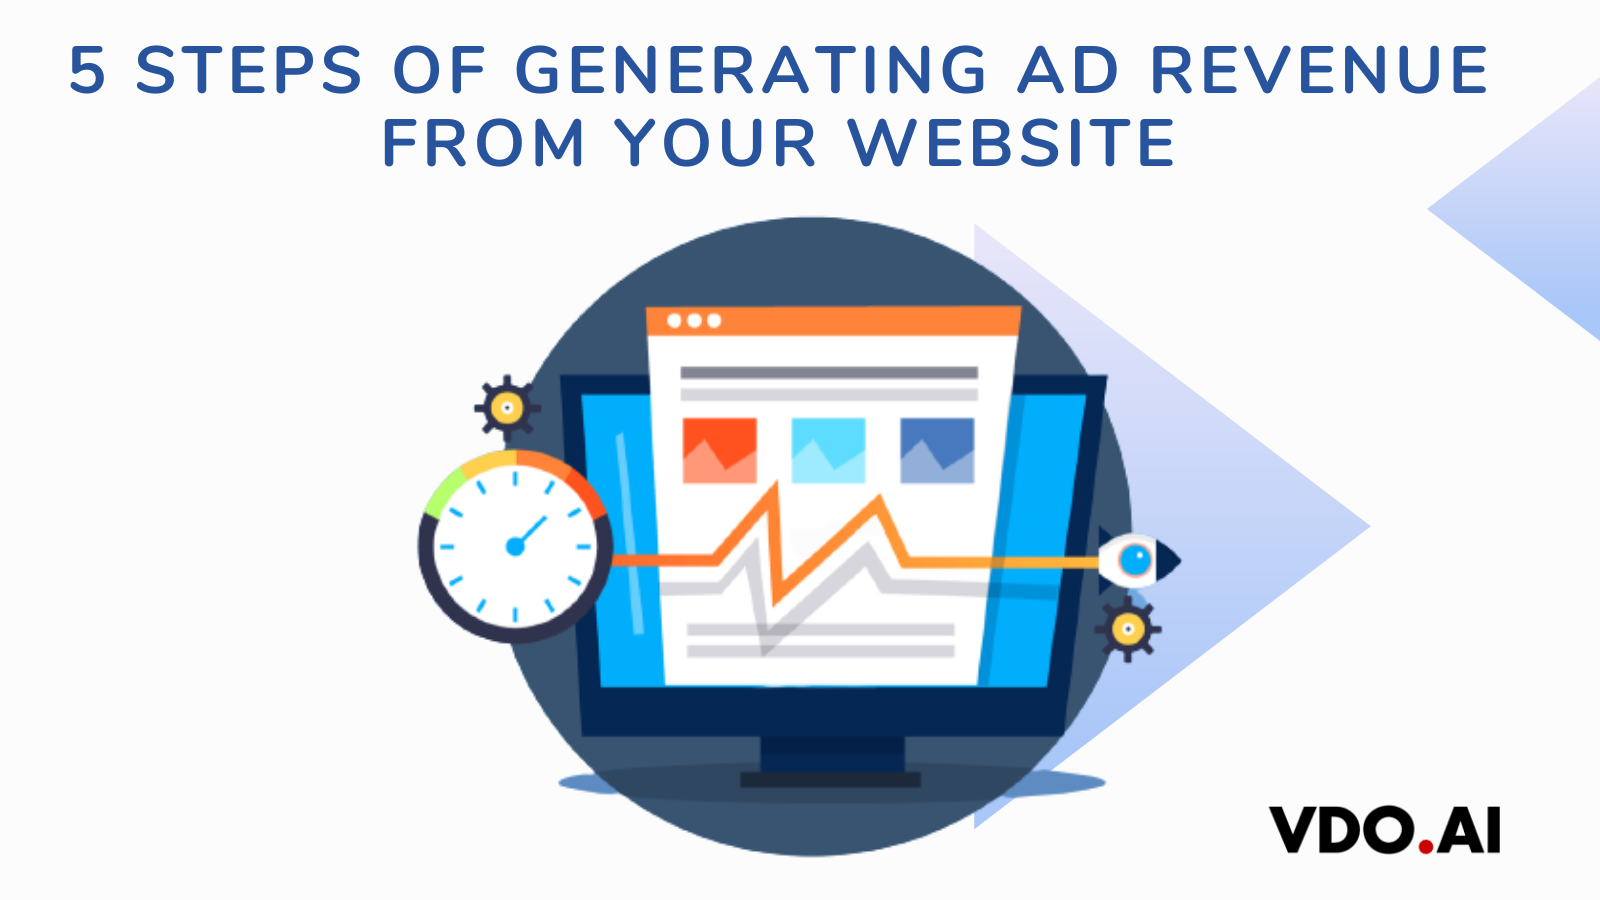 Generating Ad Revenue | VDO.AI